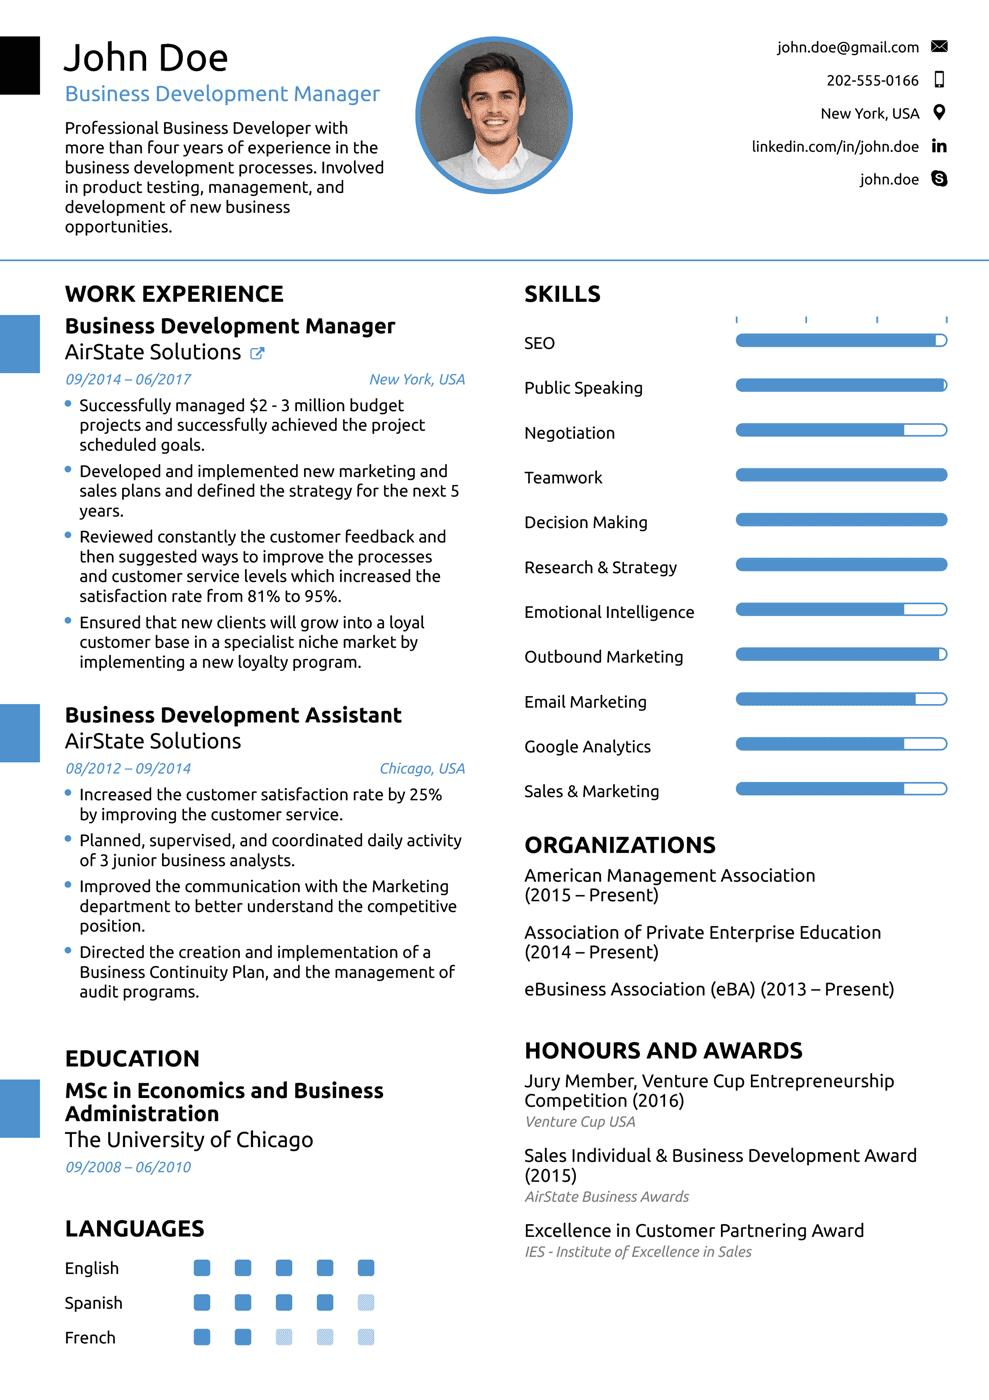 58 Awesome Top Rated Resume Formats with Pics